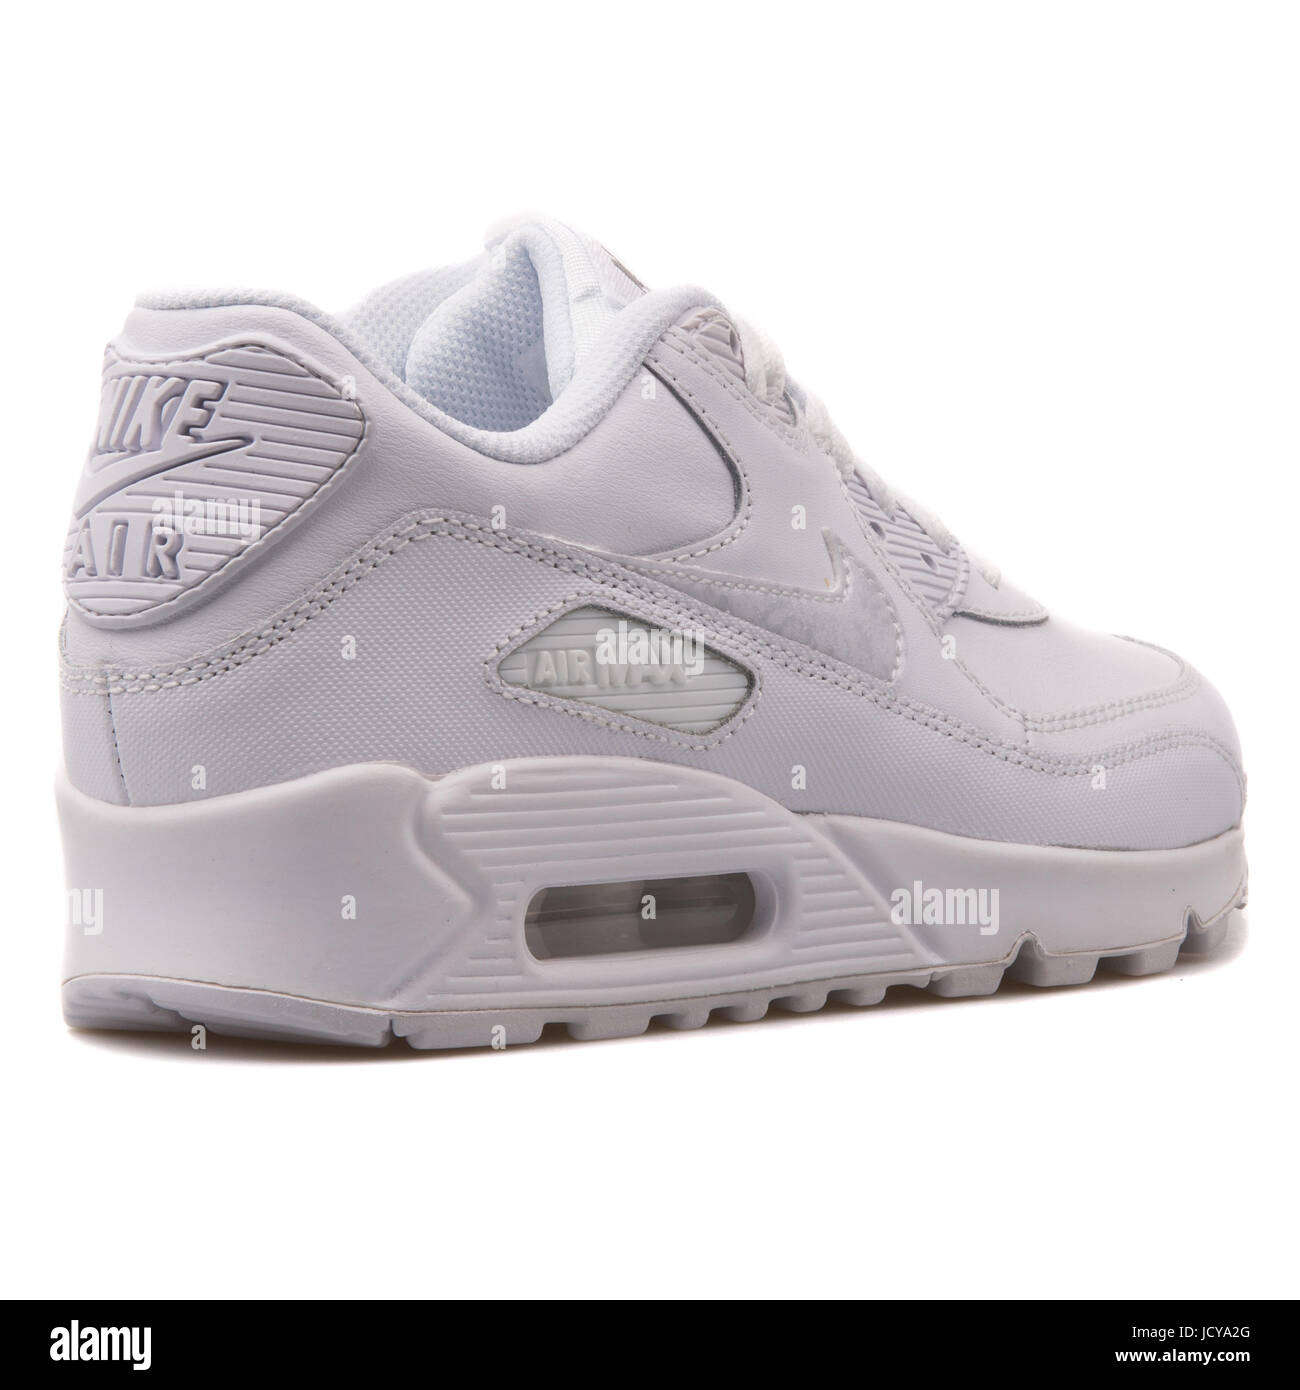 premium selection 24c57 3f63a Nike Air Max 90 LTR (GS) White Youth s Running Shoes - 724821-100